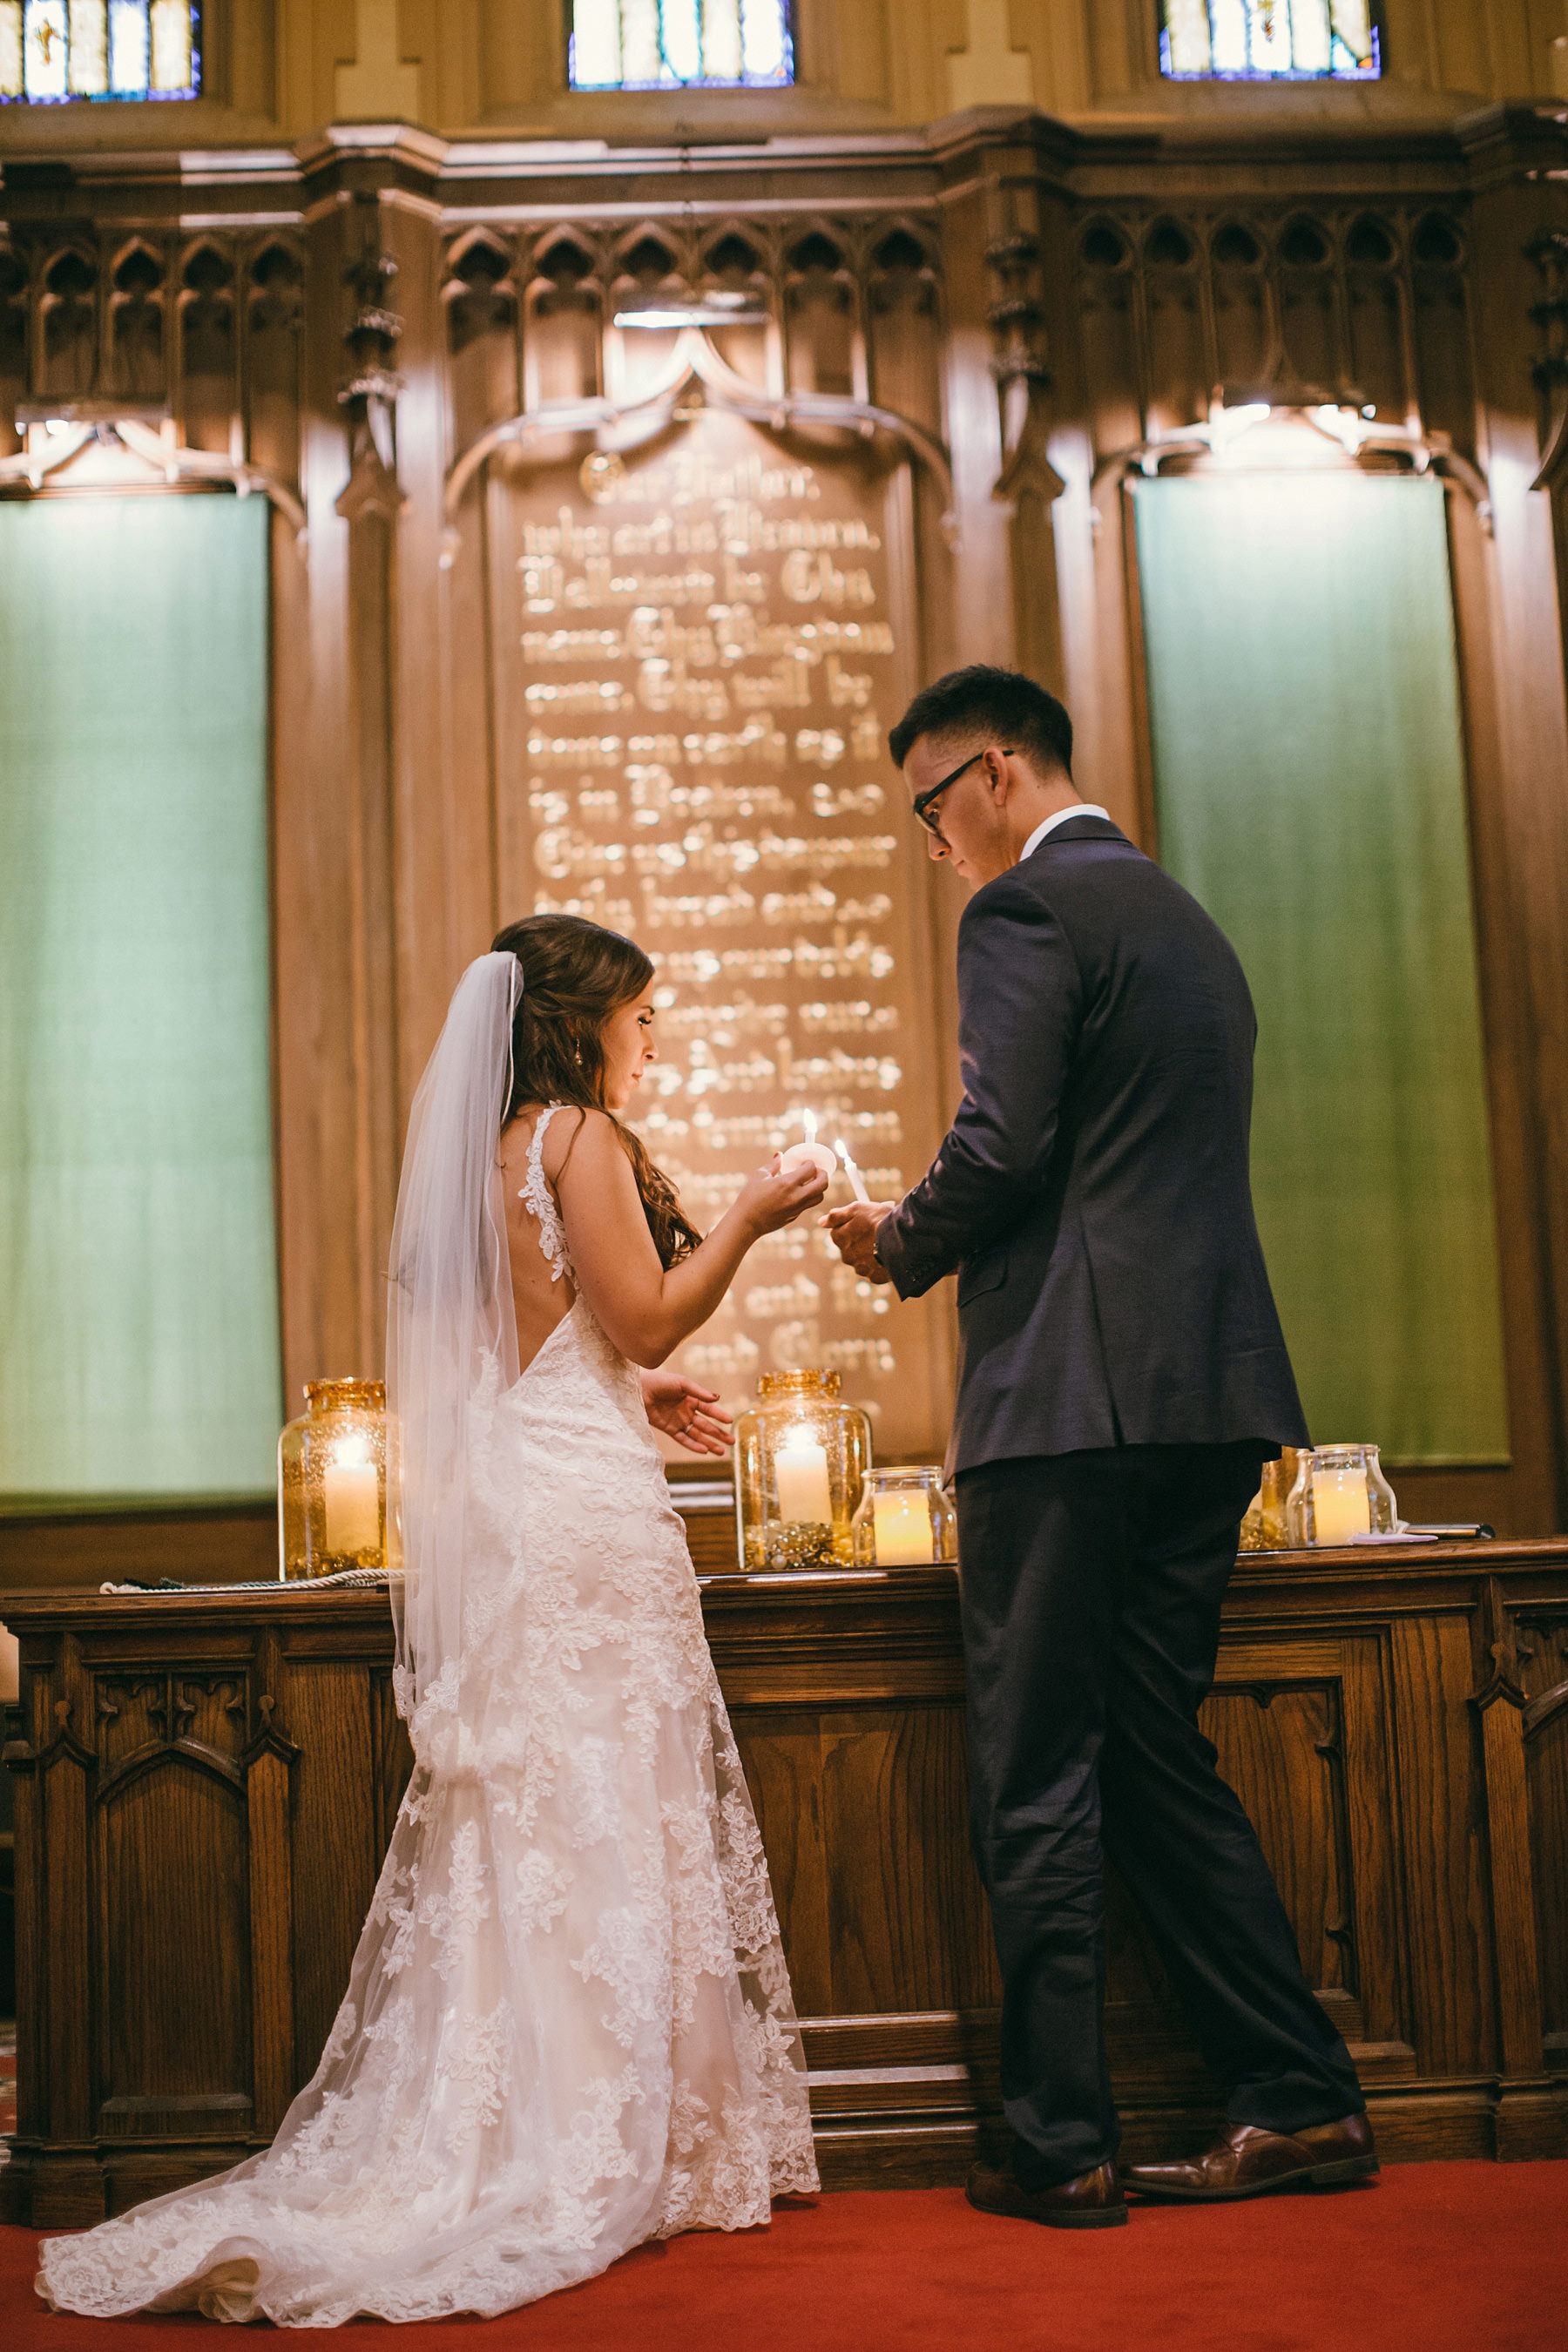 113_Jacob's Well Church & The Guild Wedding Kansas City, Missouri_Kindling Wedding Photography.JPG